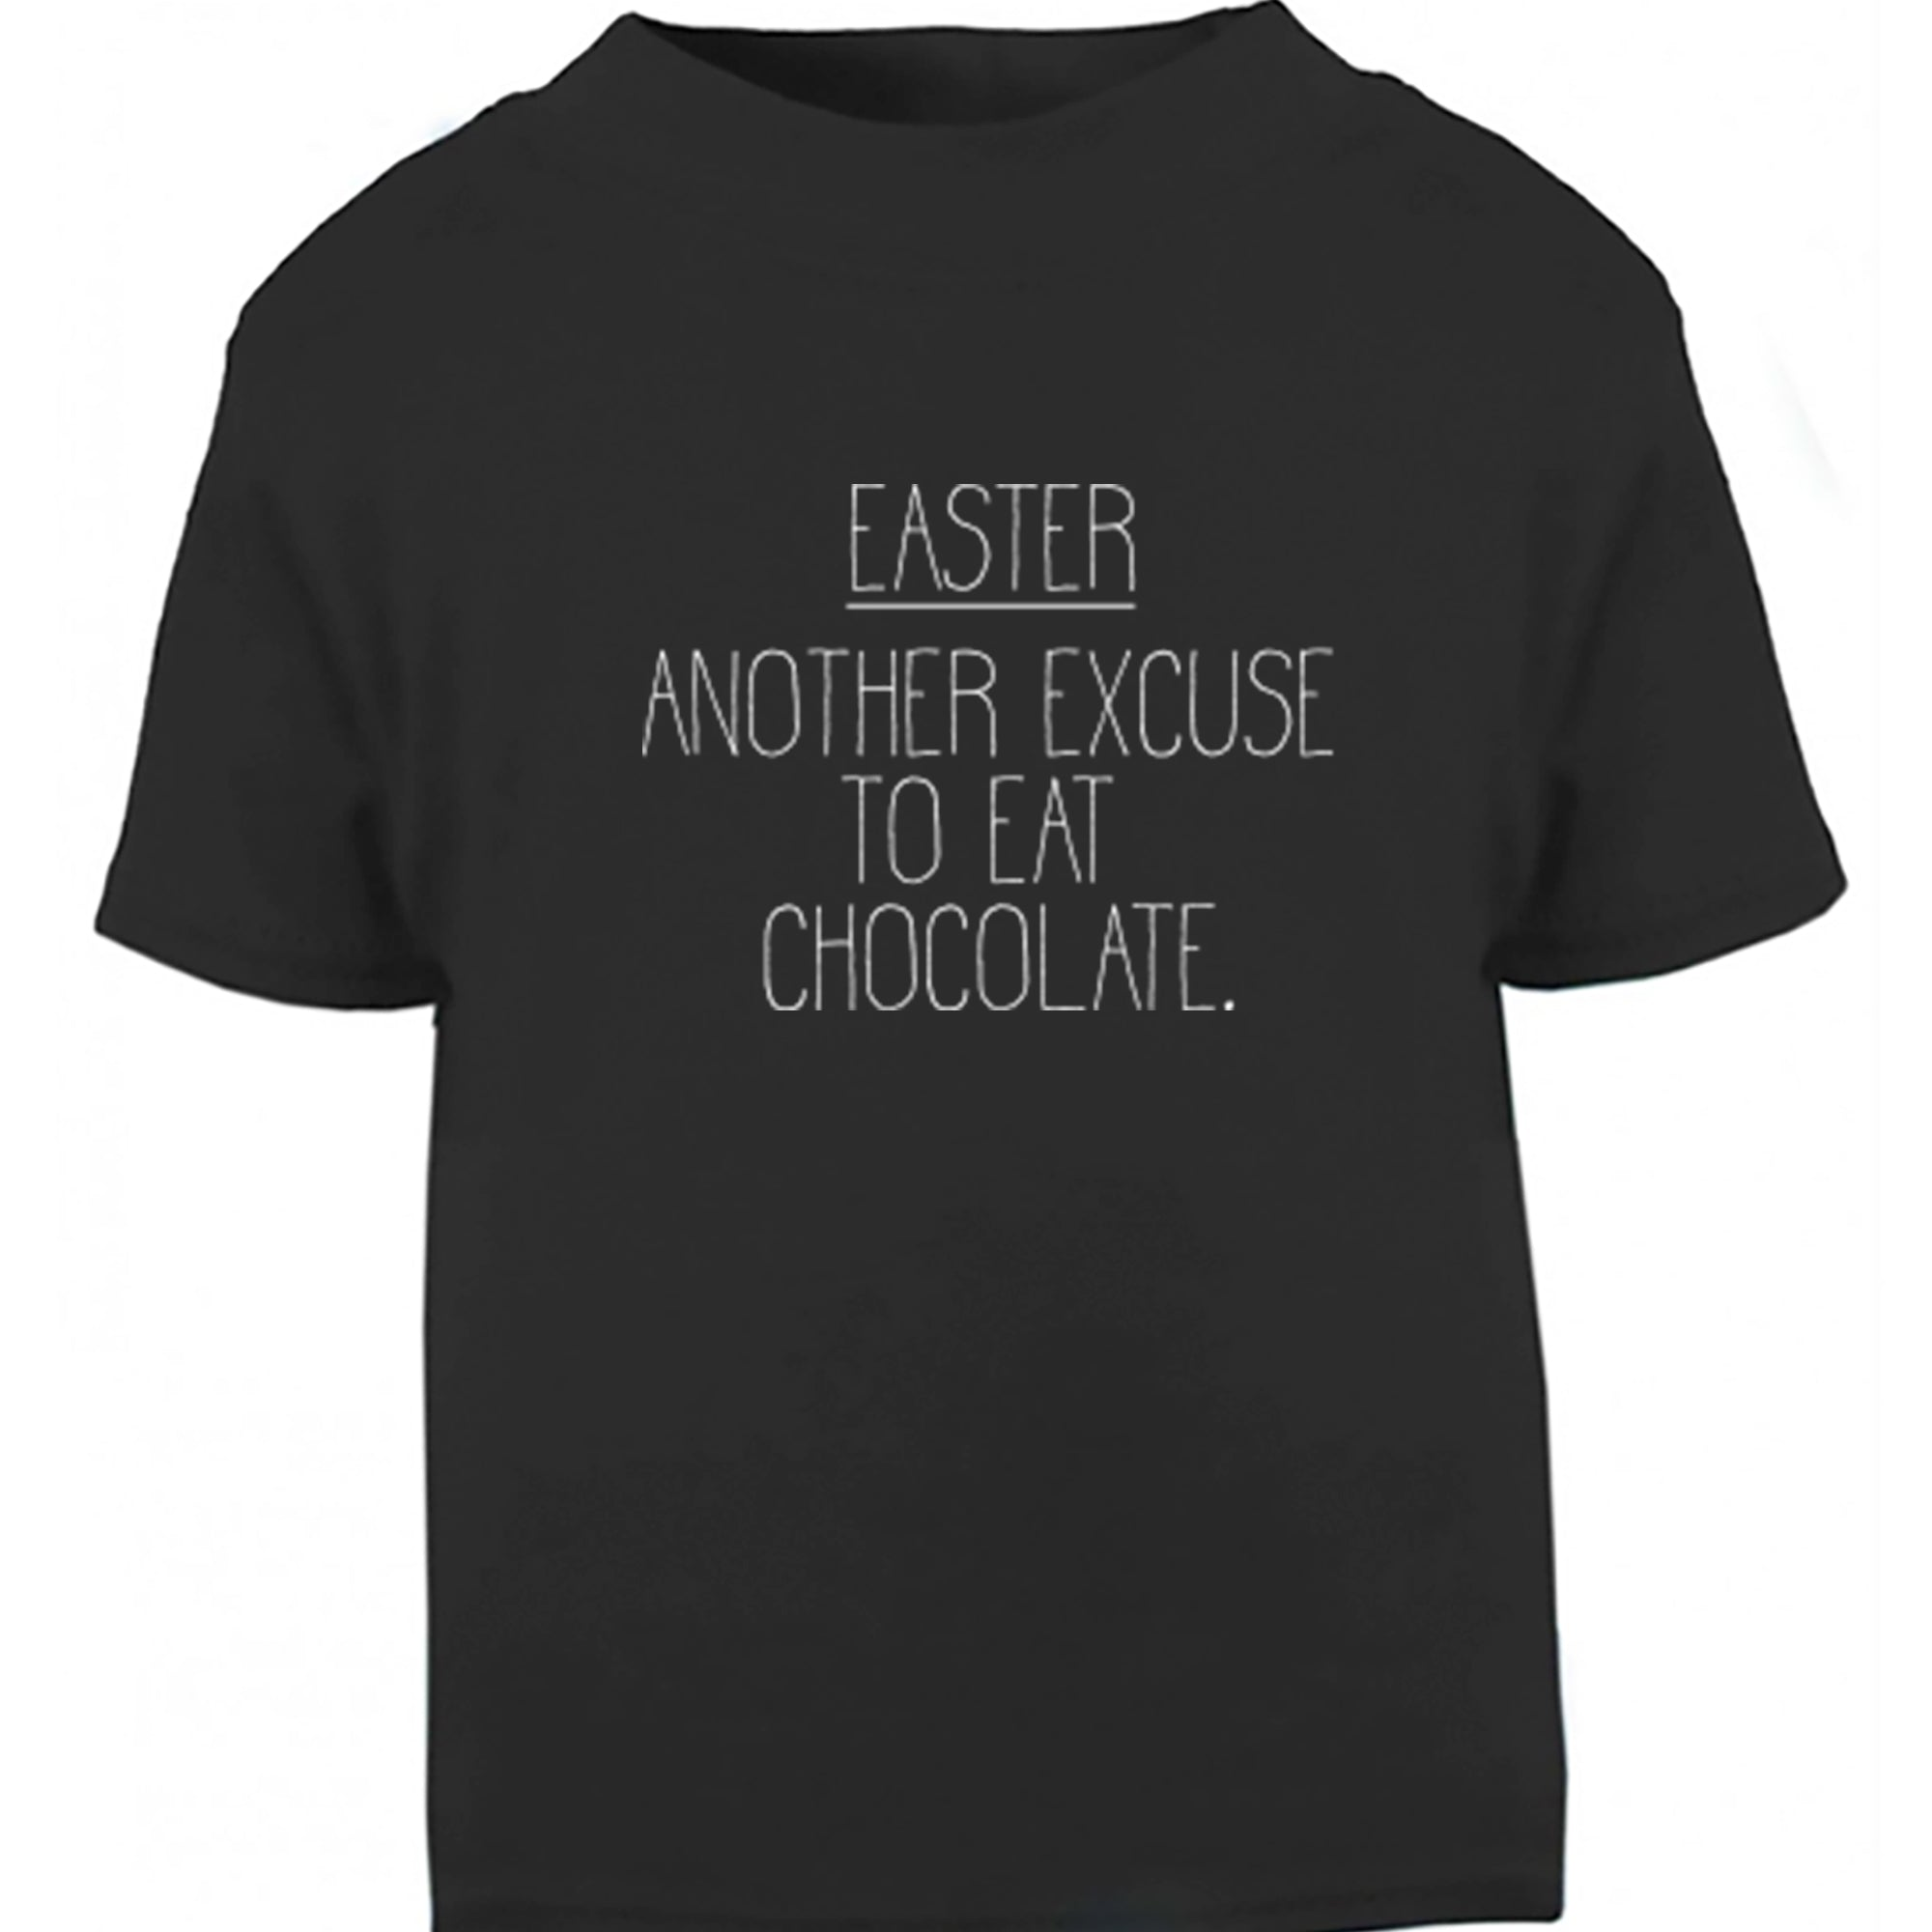 Easter, Another Excuse To Eat Childrens Ages 3/4-12/14 Unisex Fit T-Shirt S0416 - Illustrated Identity Ltd.